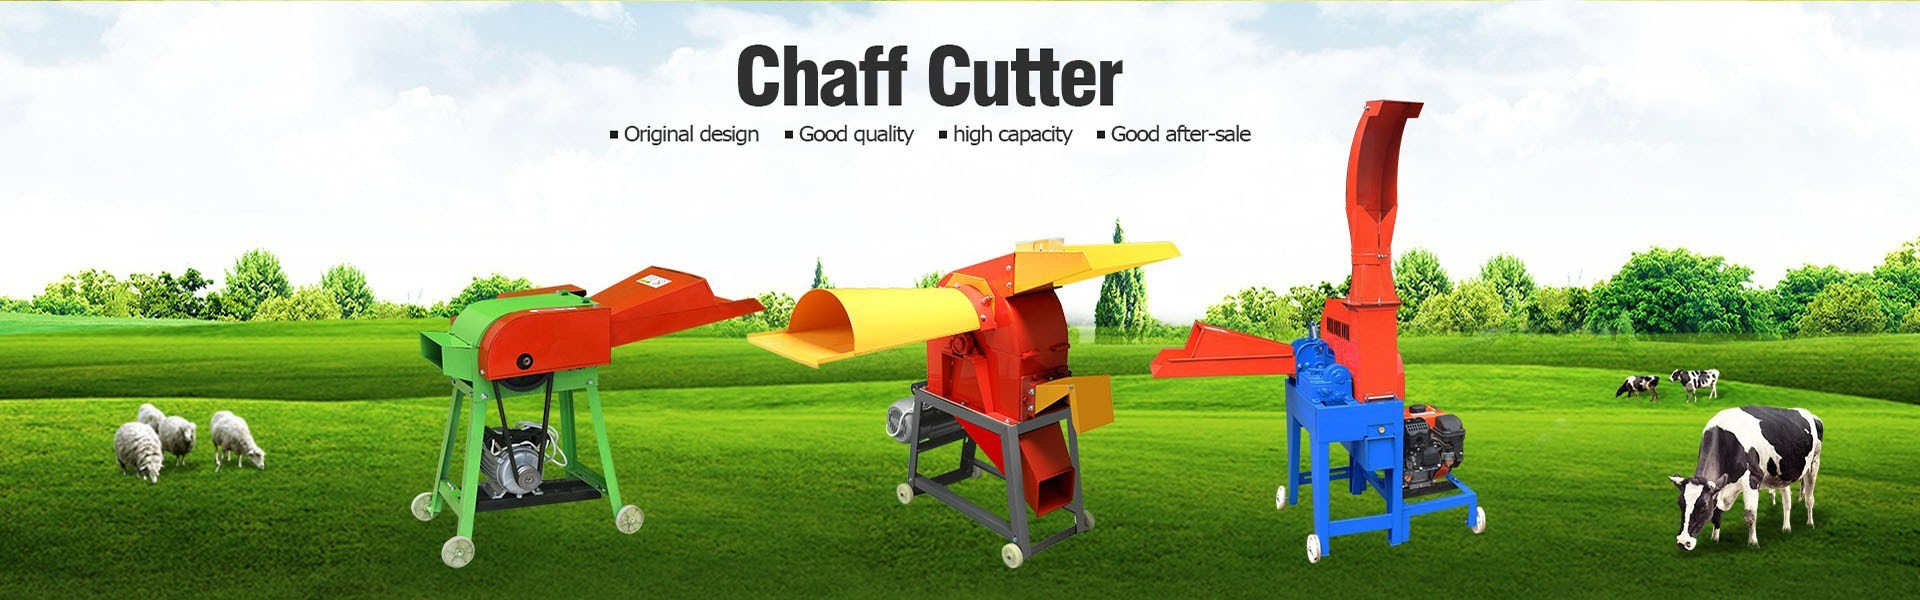 chaff cutter price for sale